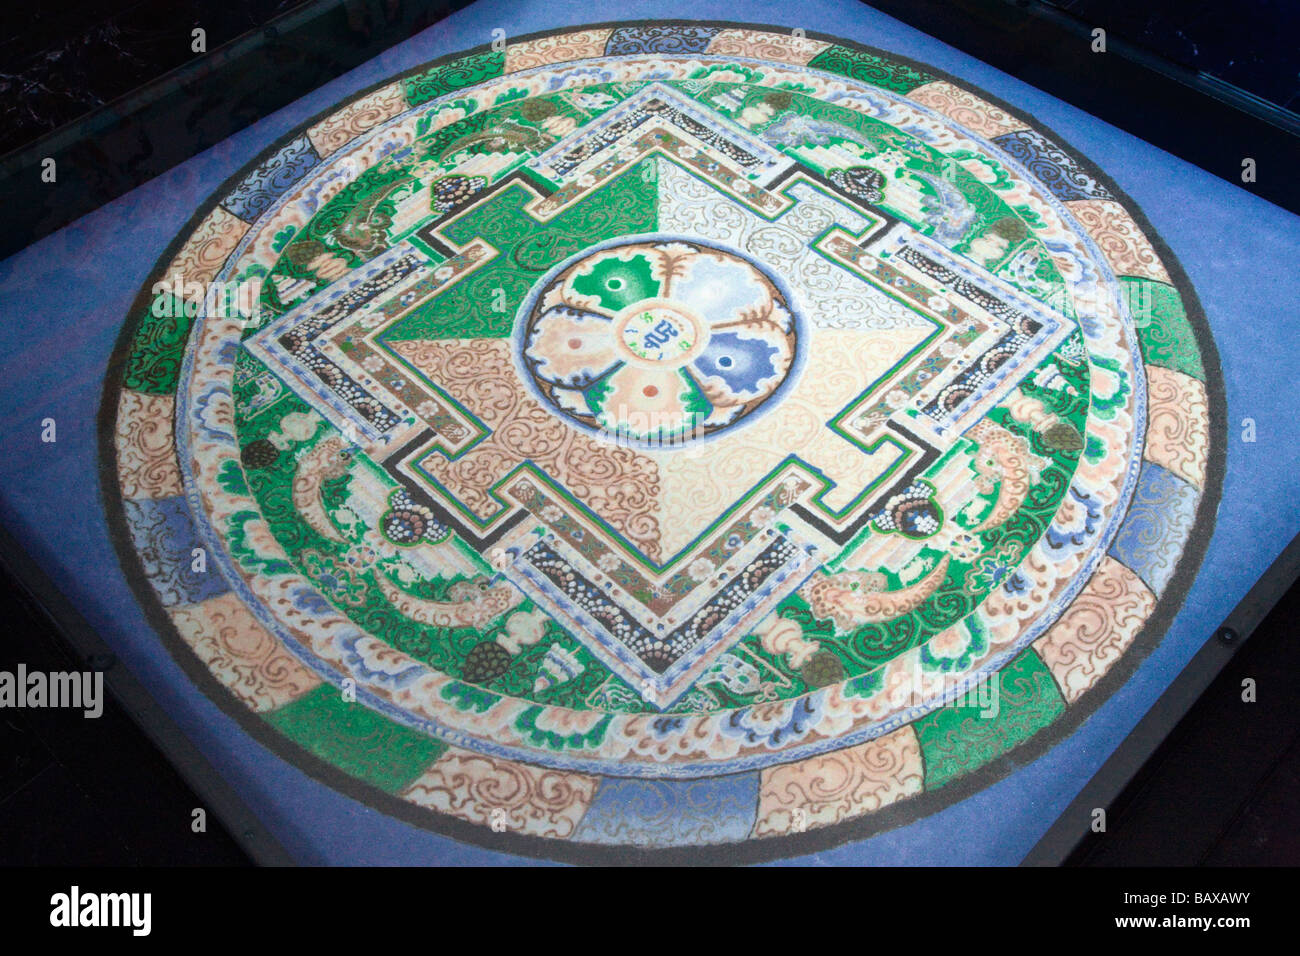 Mandala handmade in sand by Himalayan monks - Stock Image